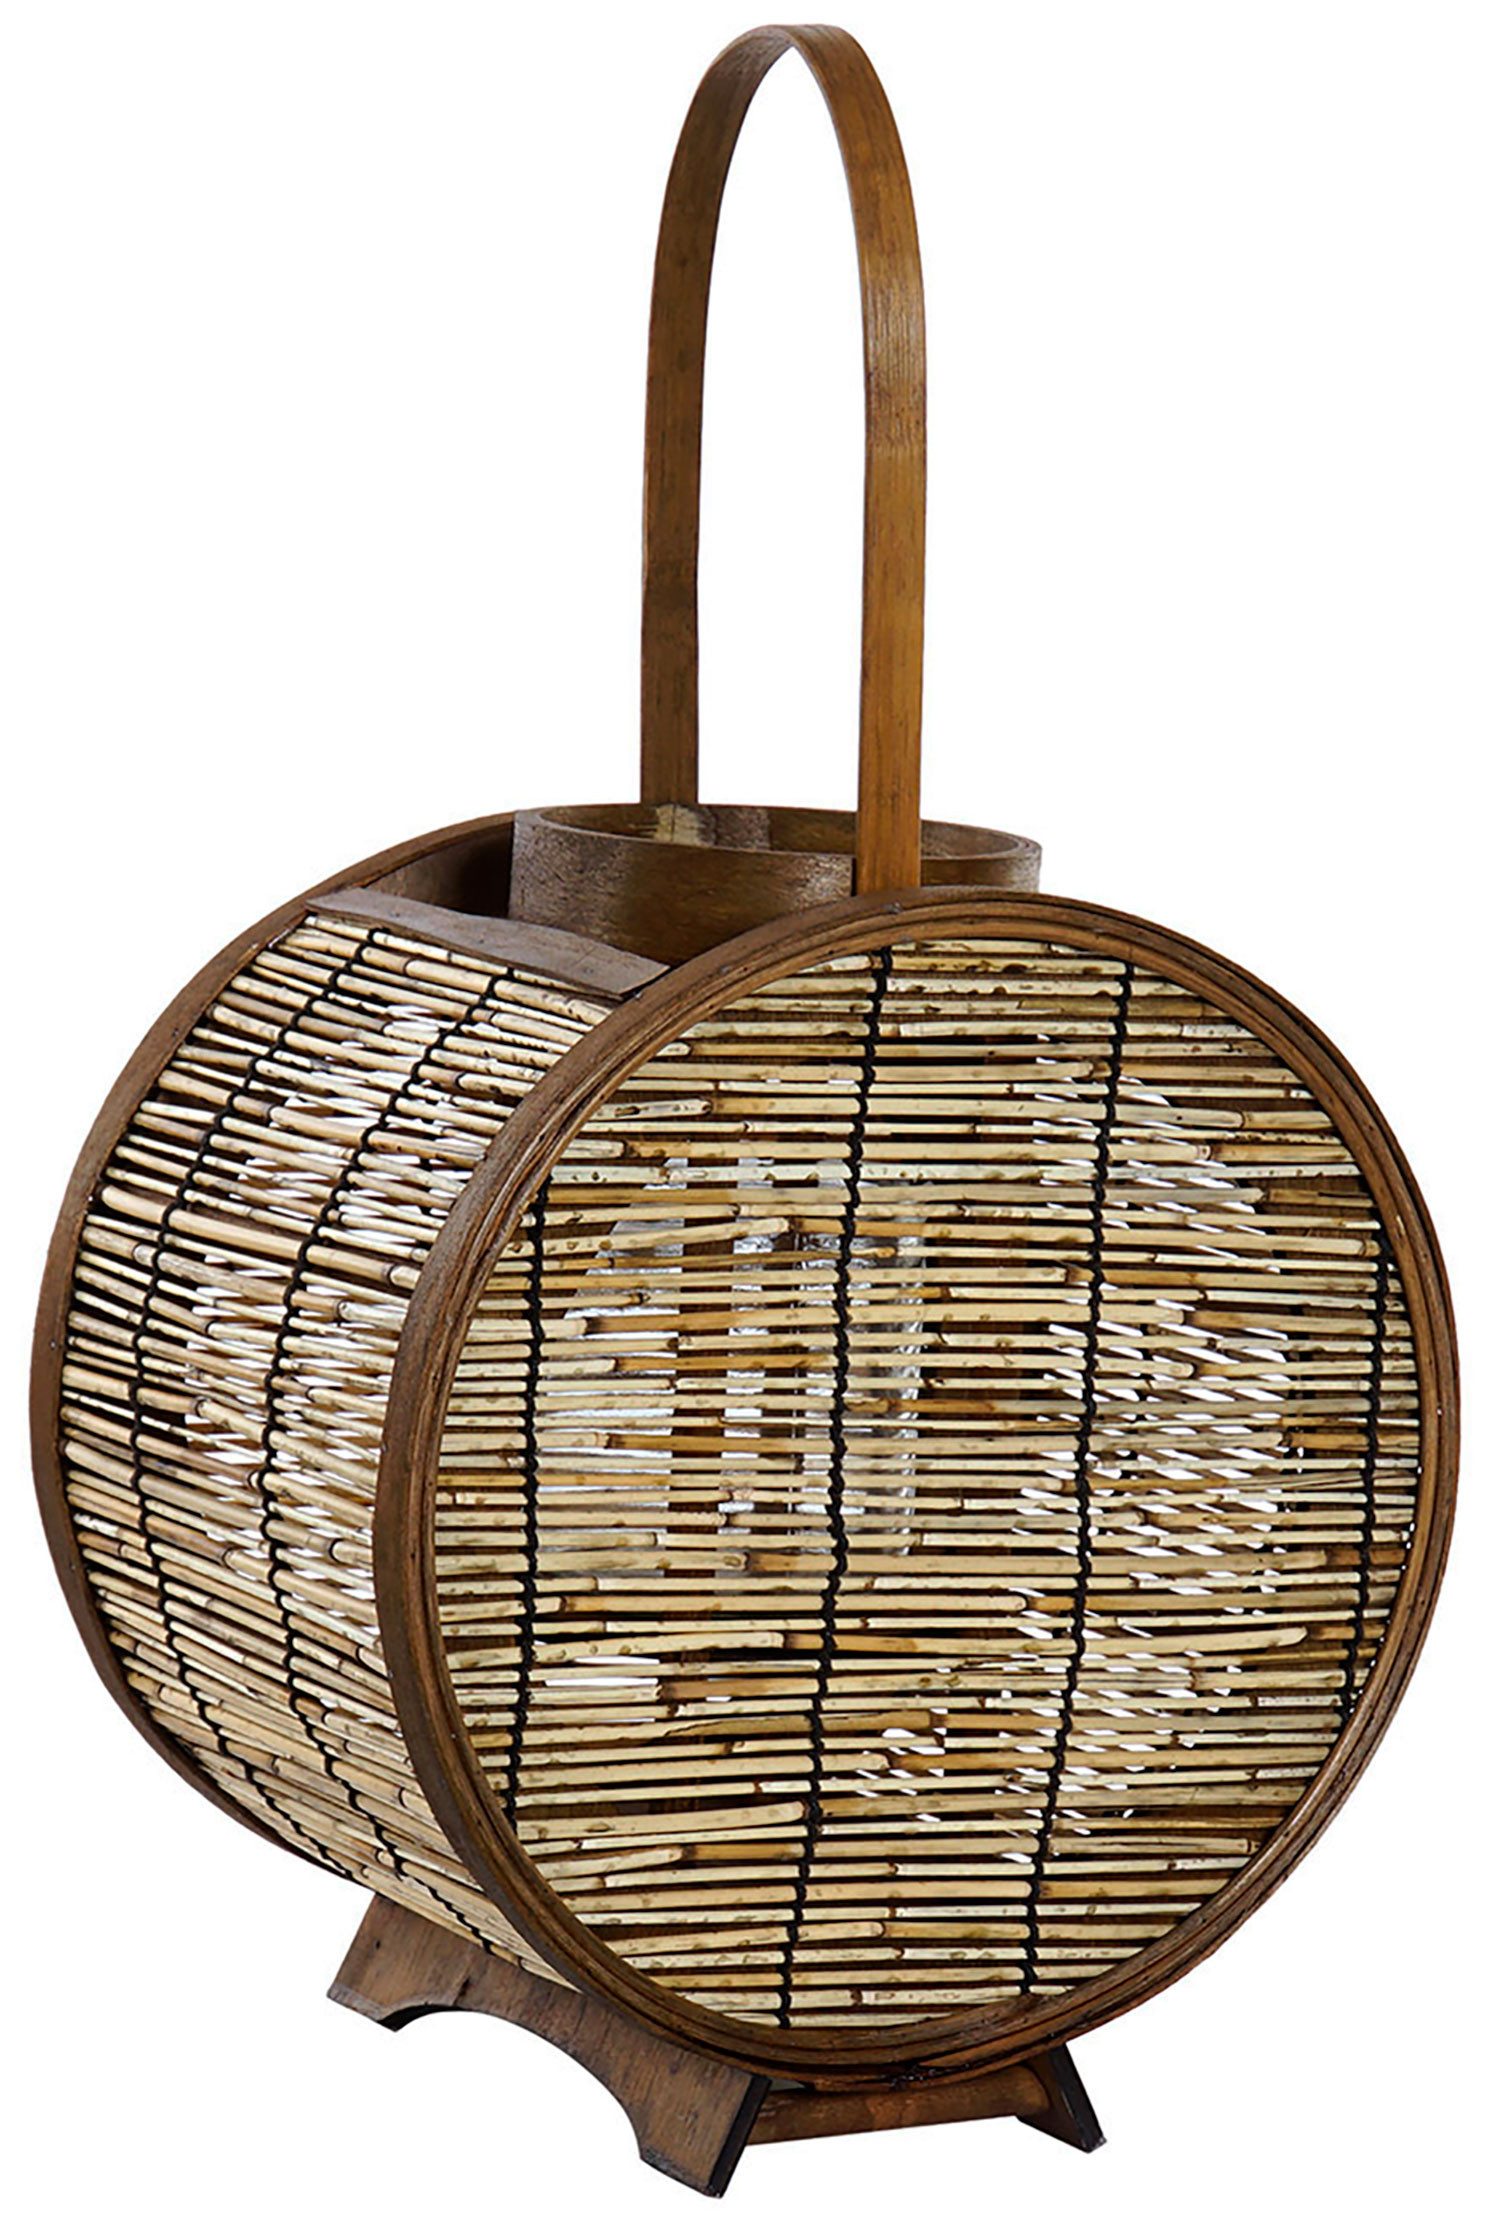 Lantern candle Holders Decorative Bamboo and Glass, Natural color. 2 different Sizes.